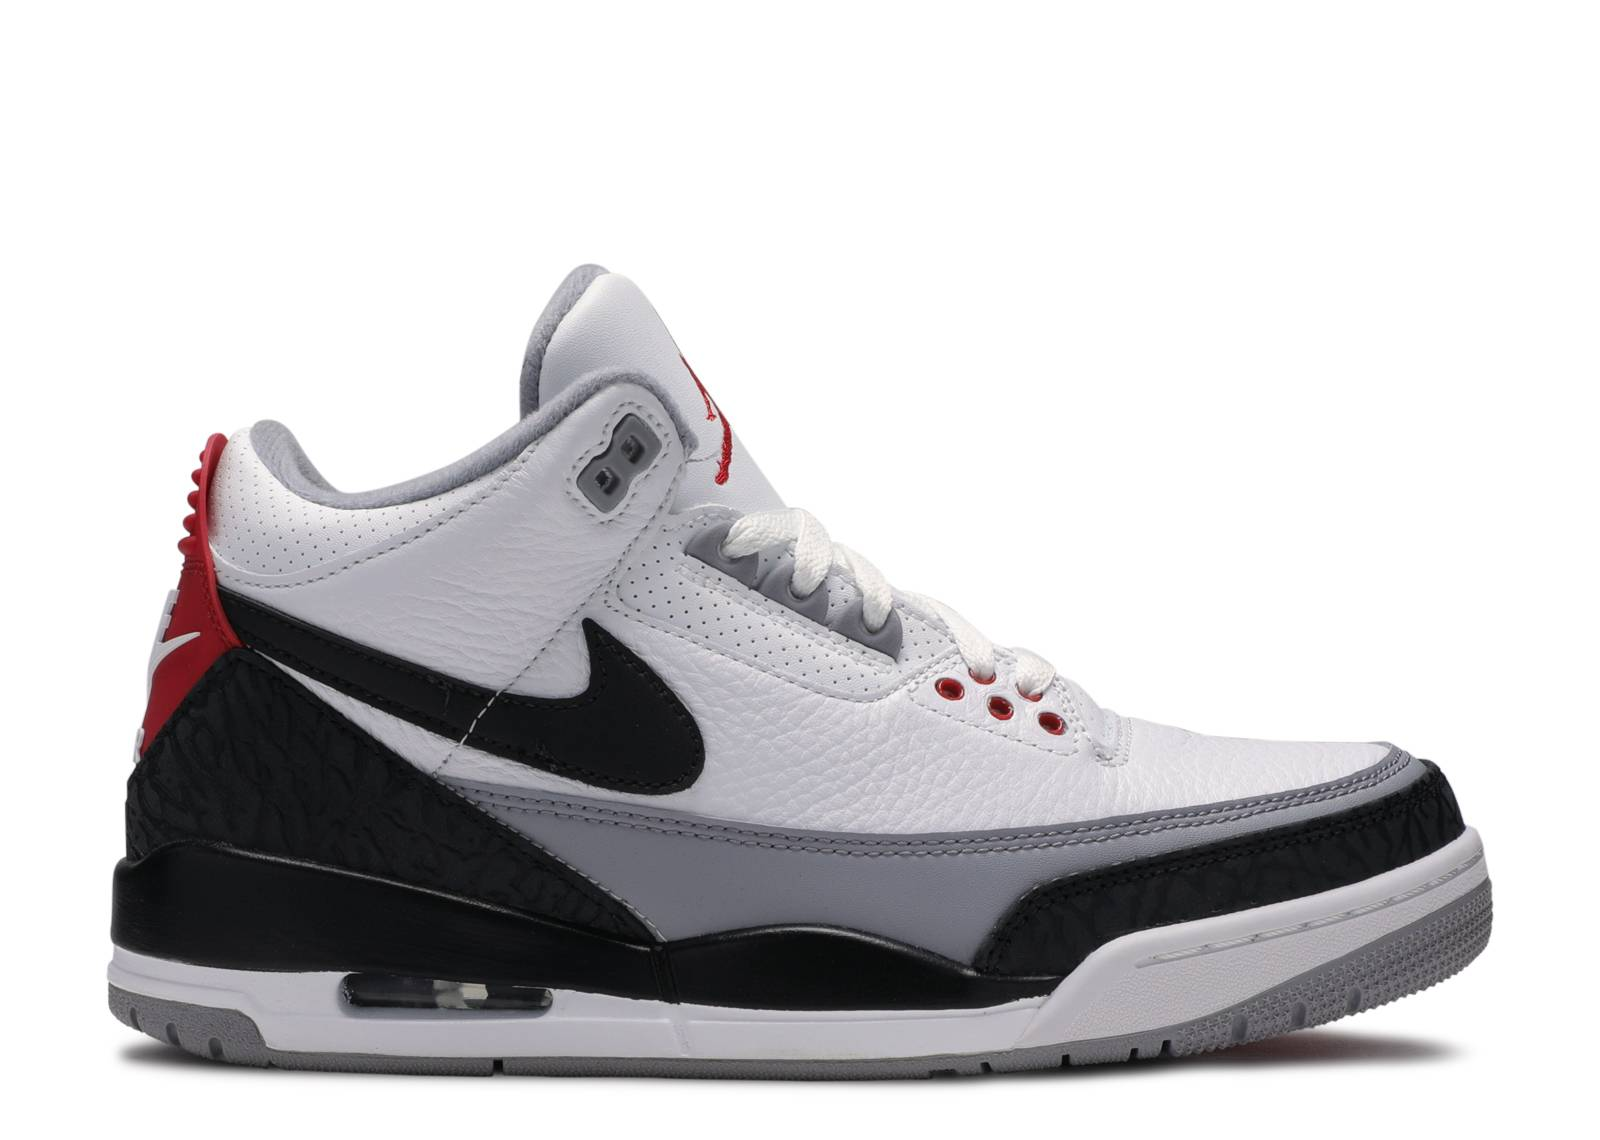 low priced 55d21 ef082 Air Jordan 3 (III) Shoes - Nike | Flight Club